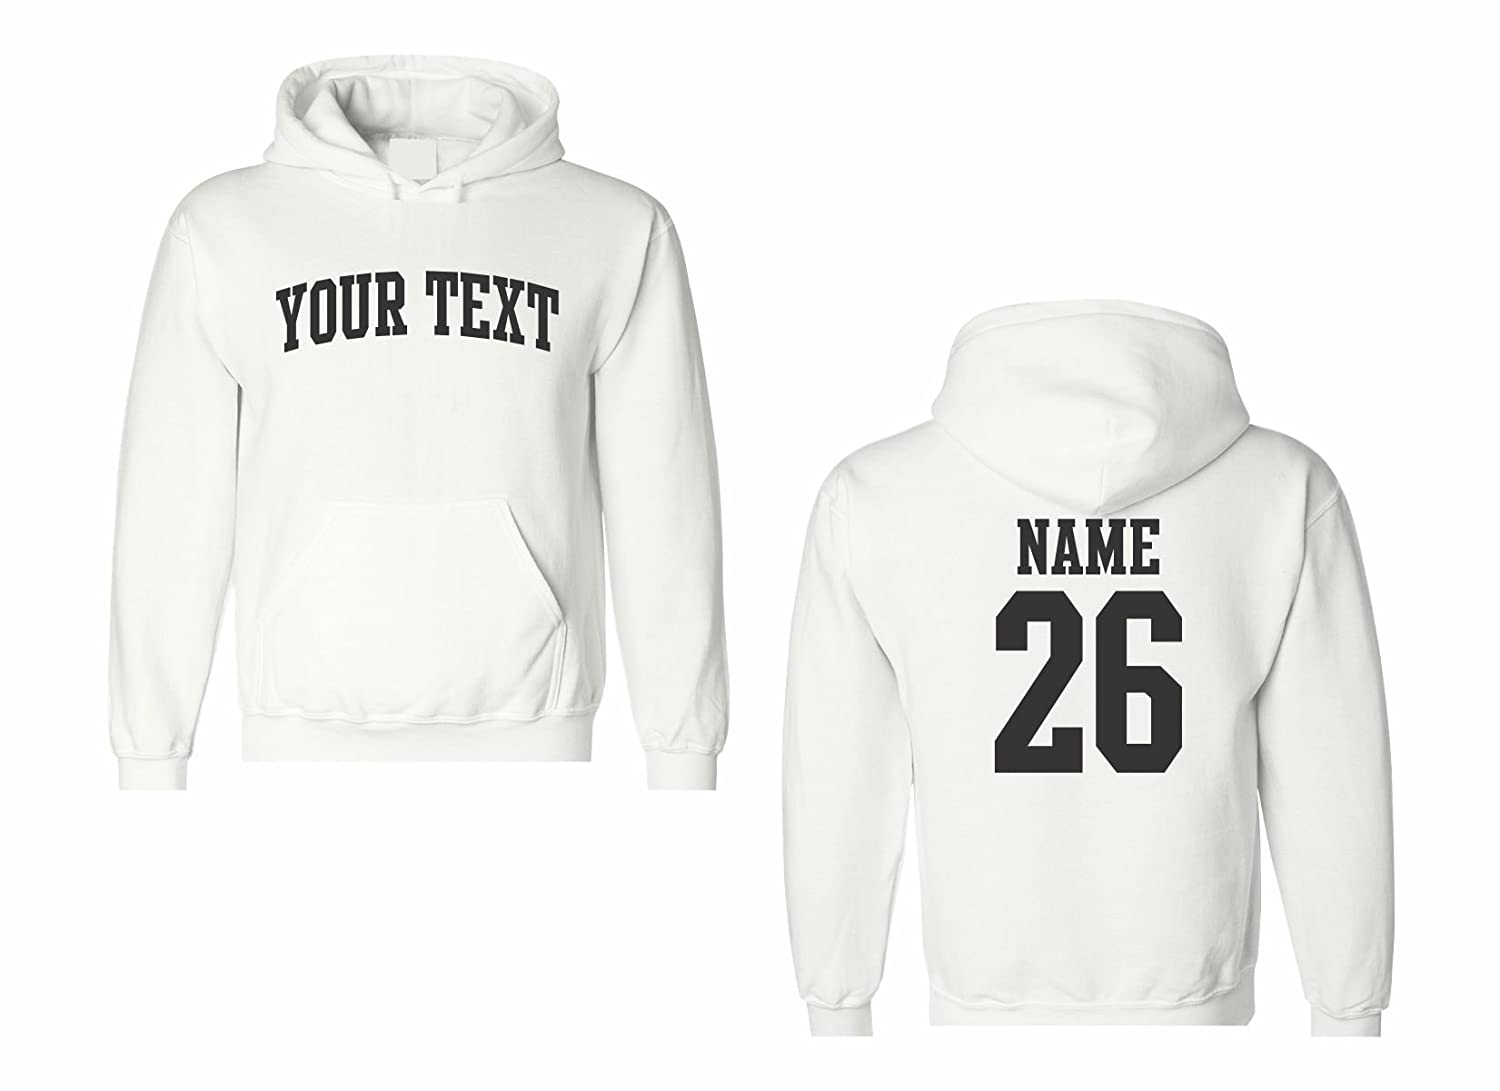 Men's Custom Personalized Hooded Sweatshirt, Front Arched text, Back Name...